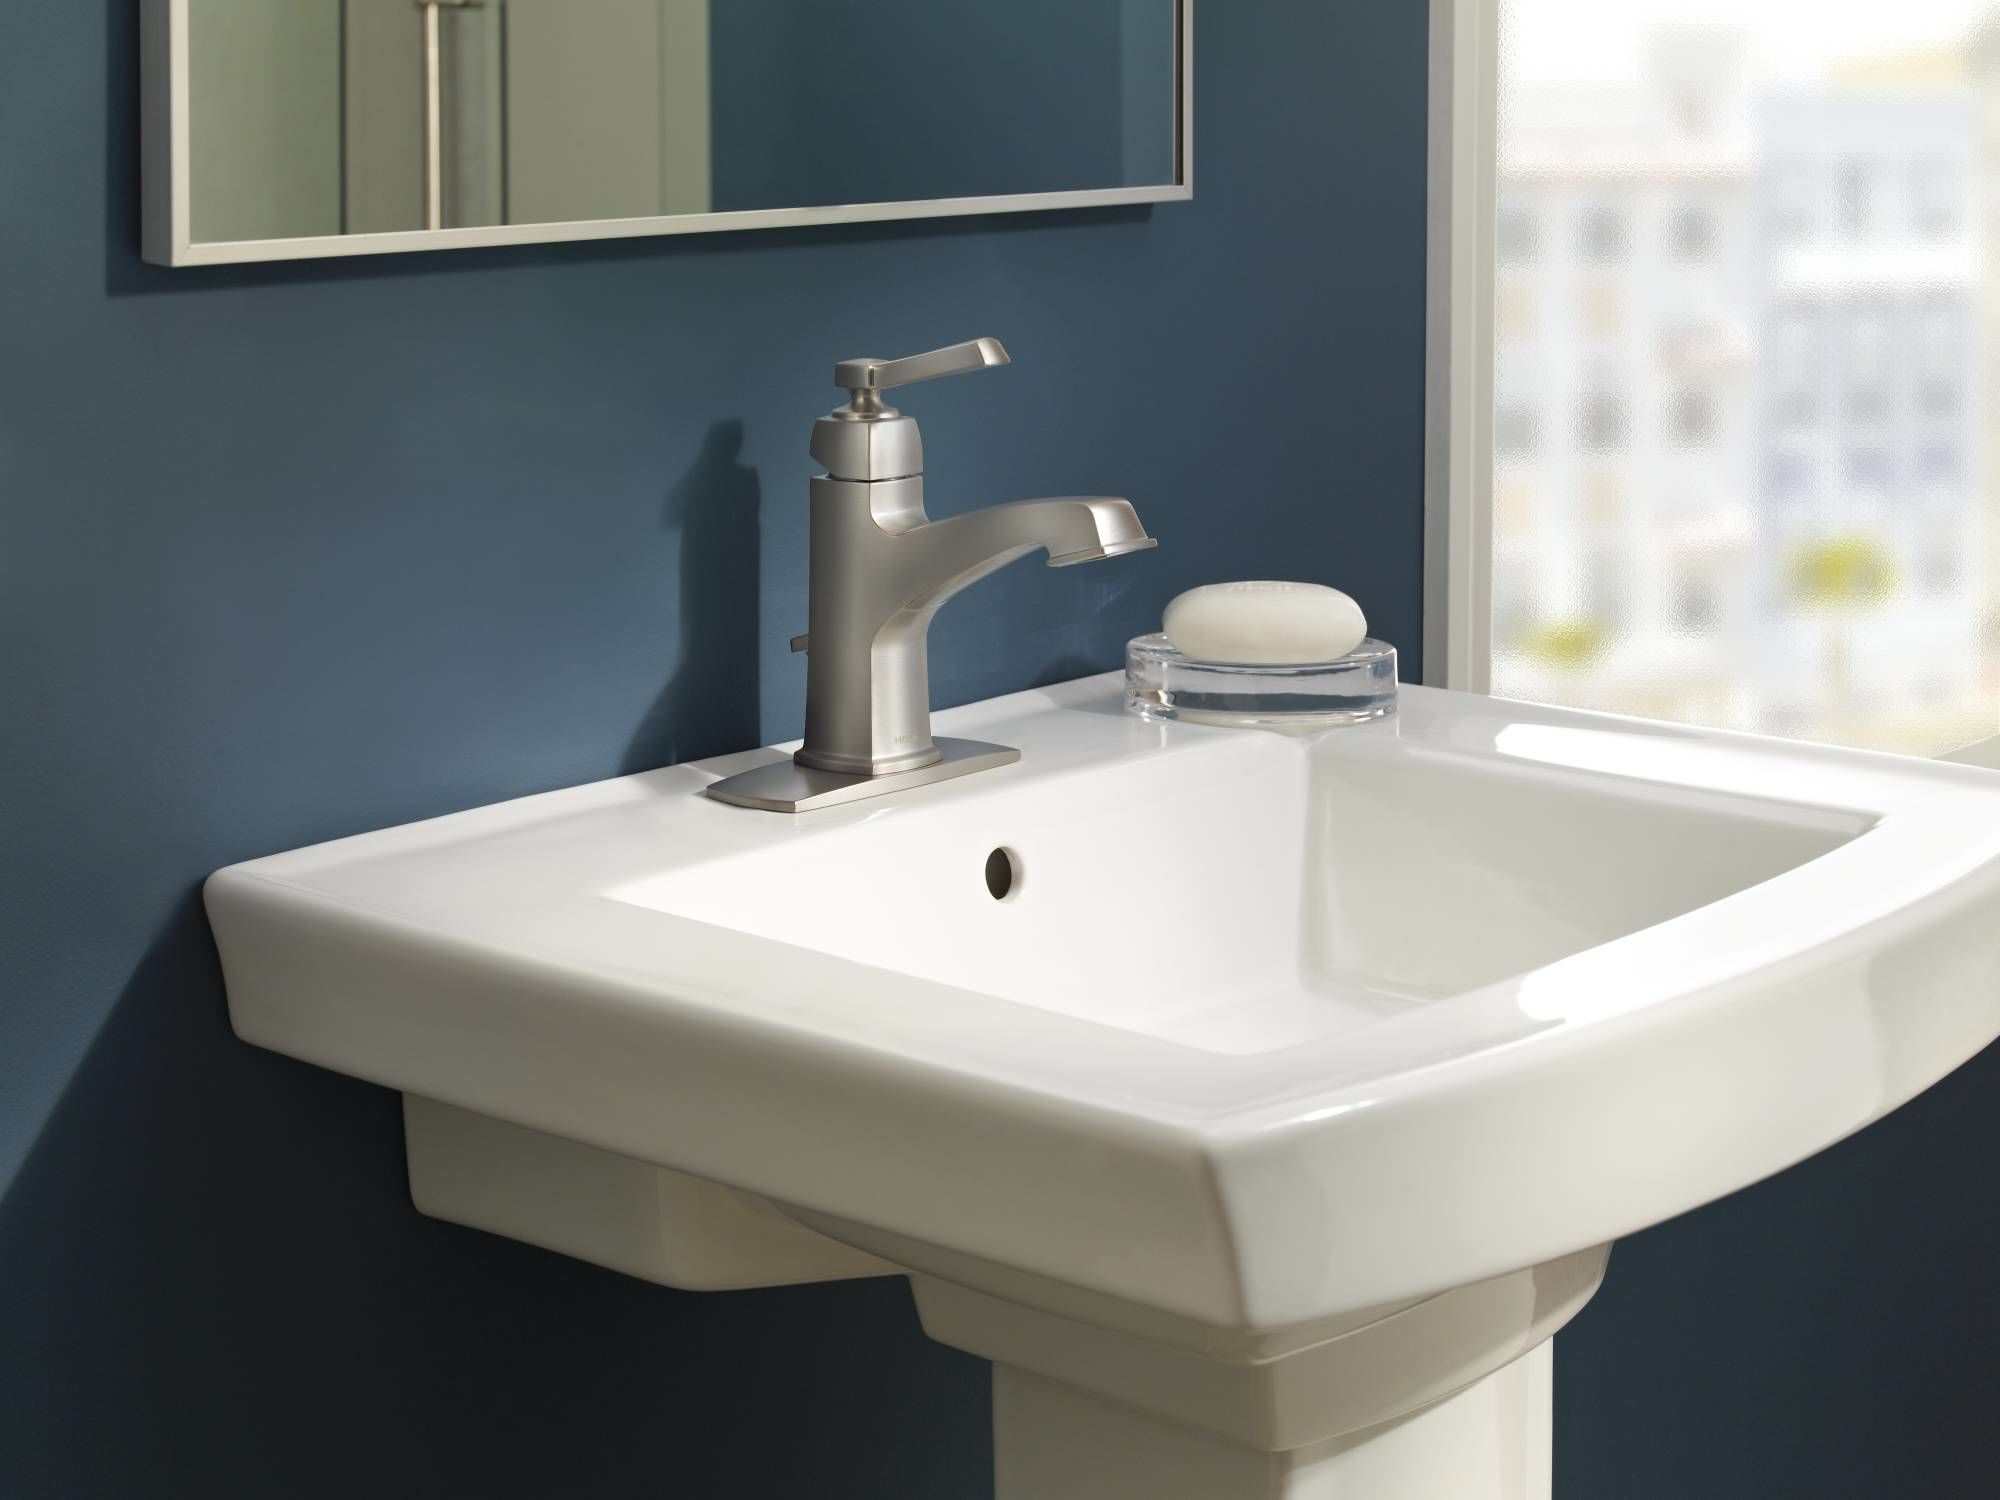 Moen 84805SRN Spot Resist Brushed Nickel Single Handle Single Hole Bathroom  Faucet From The Boardwalk Collection (Valve Included)   FaucetDirect.com